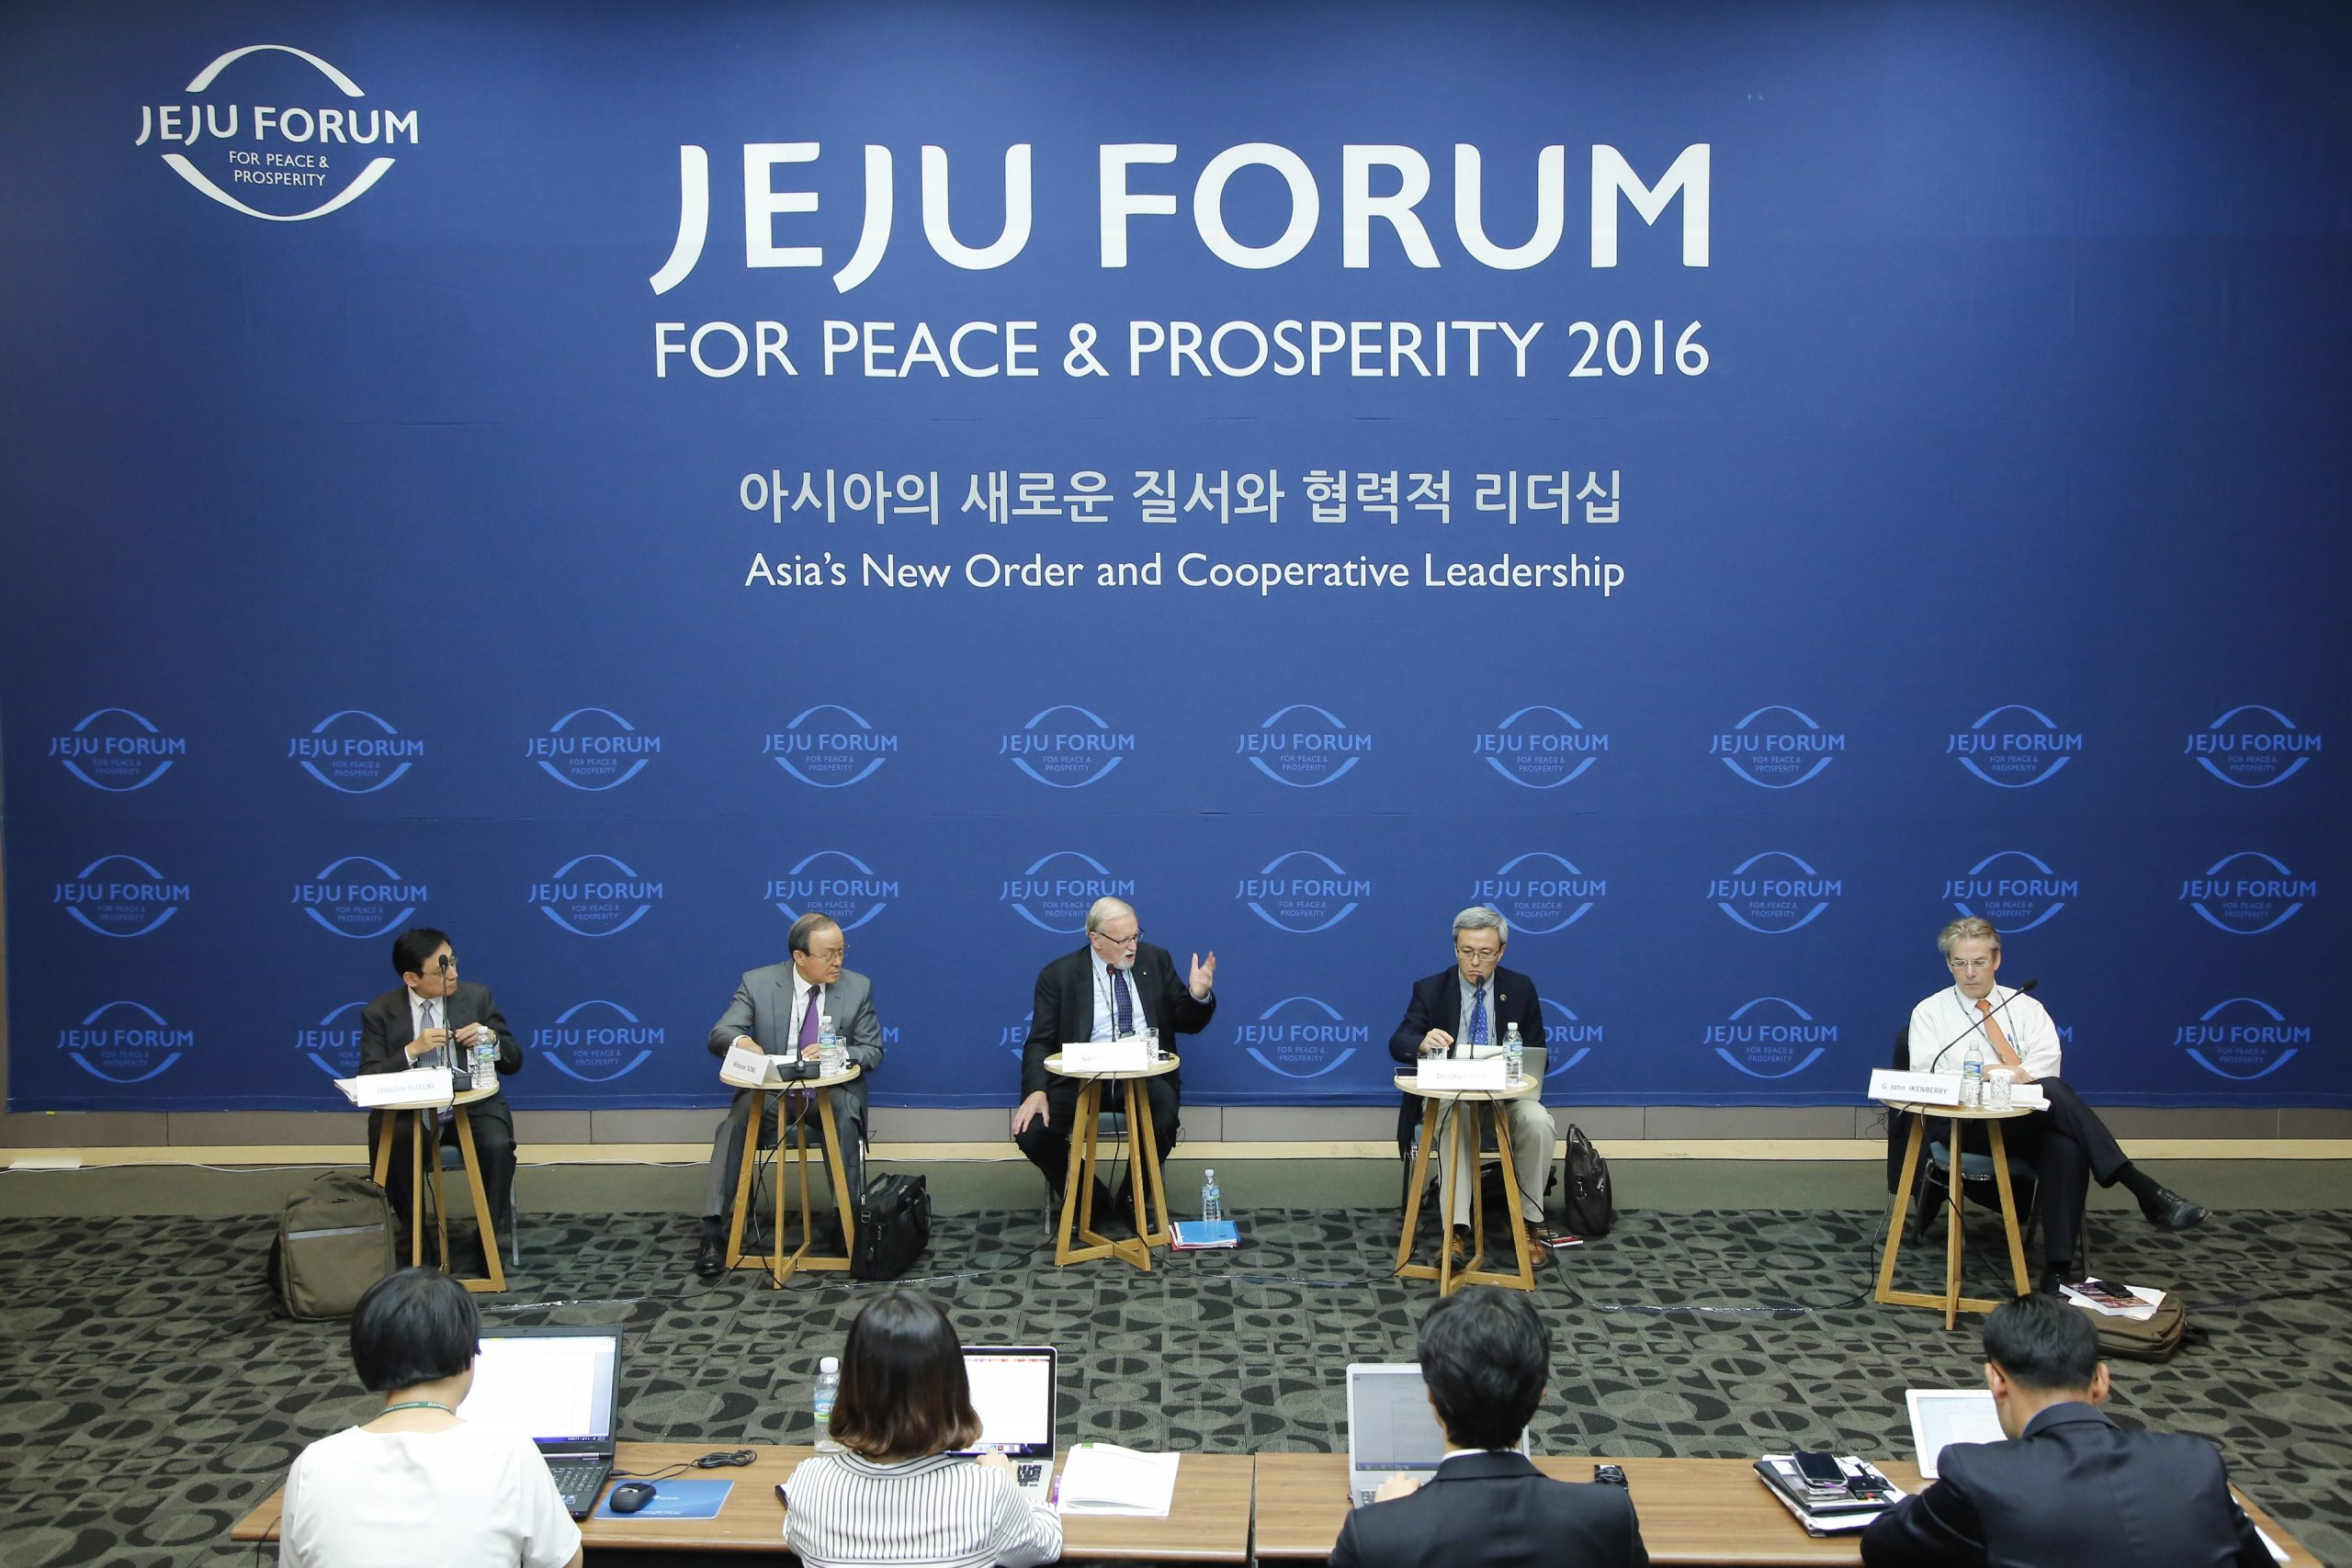 APLN at the 11th Jeju Forum 2016